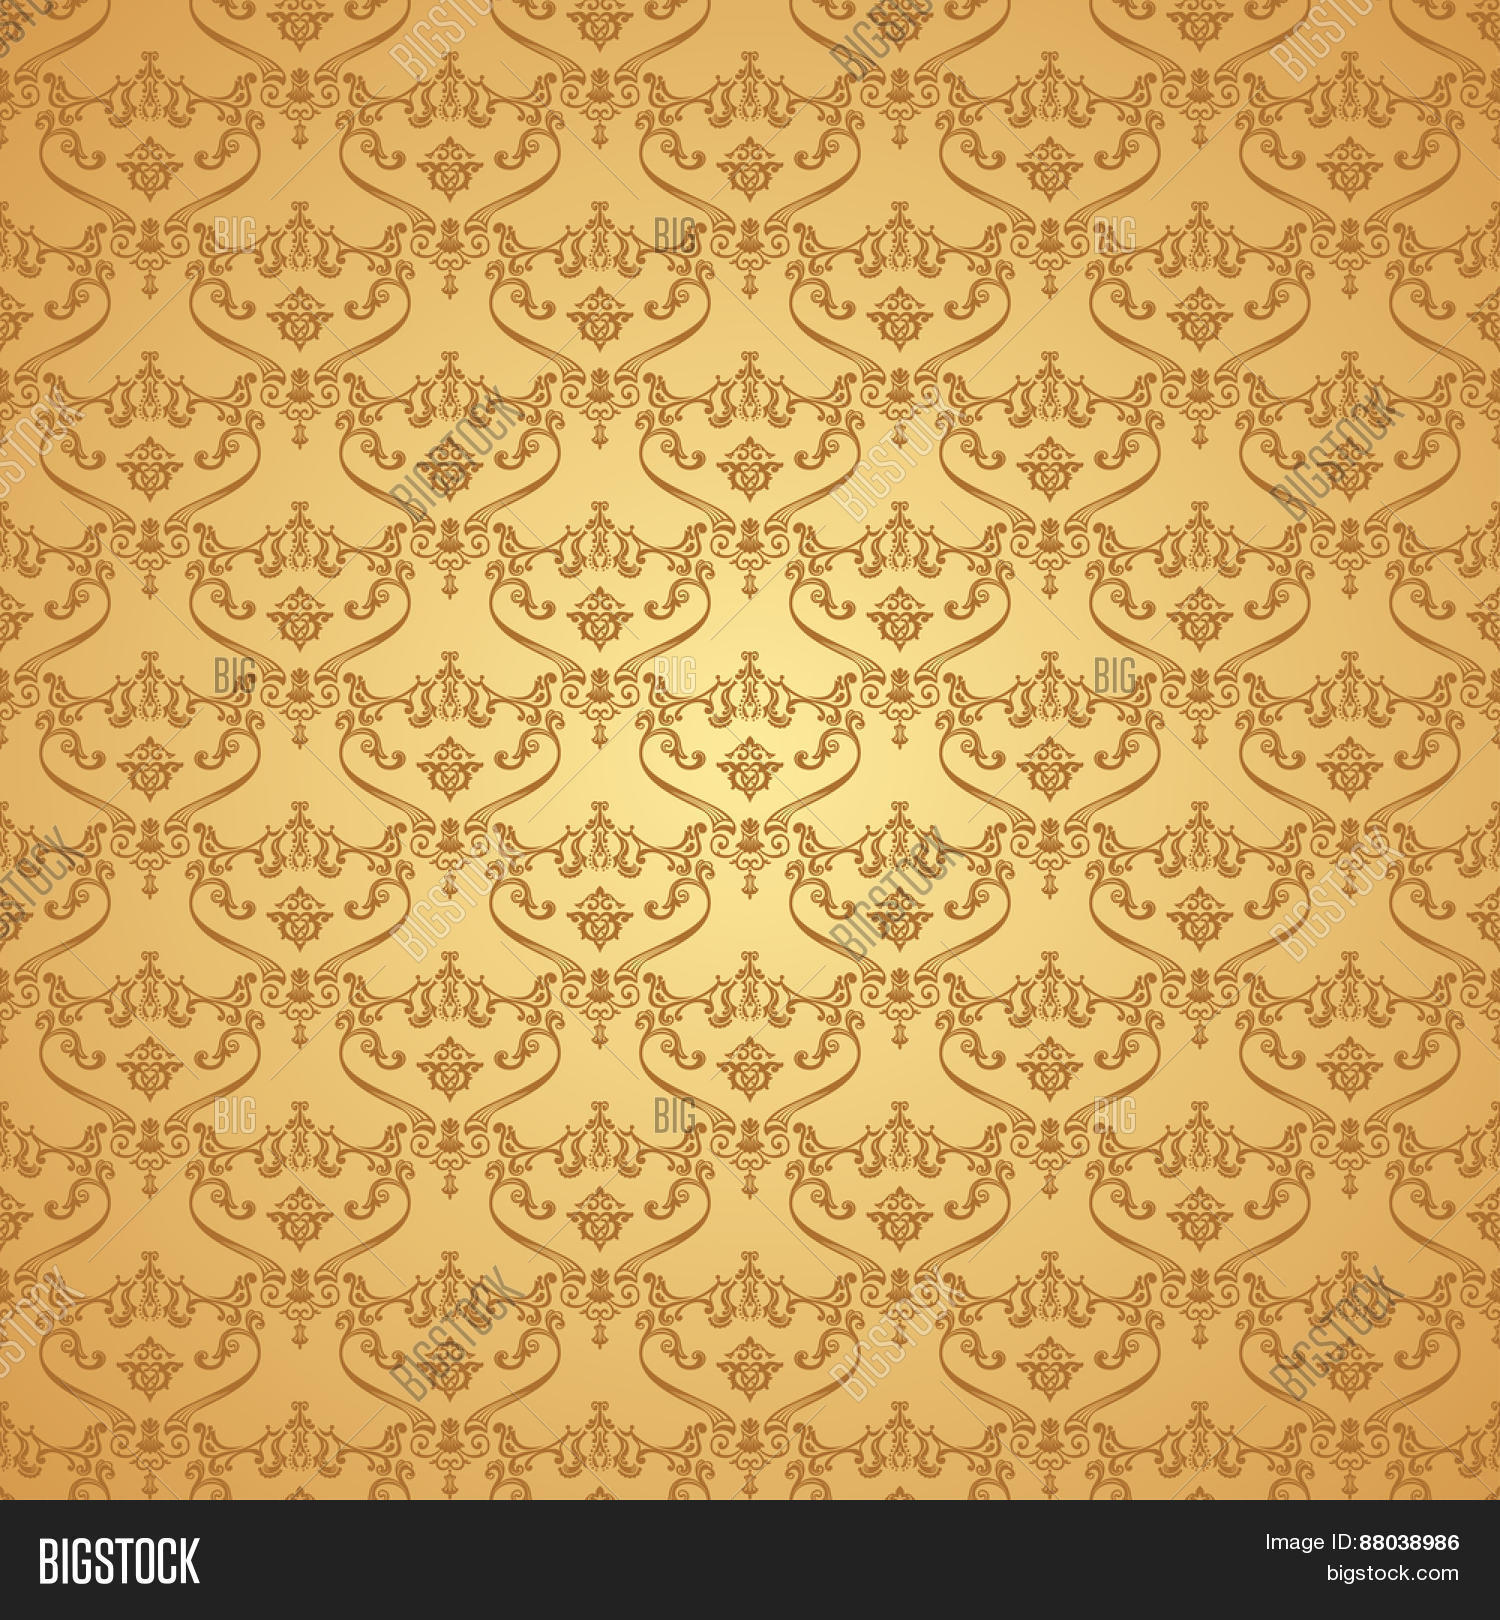 Seamless Vintage Background Calligraphic Pattern Royal Elegant Ornament Gold Wallpaper